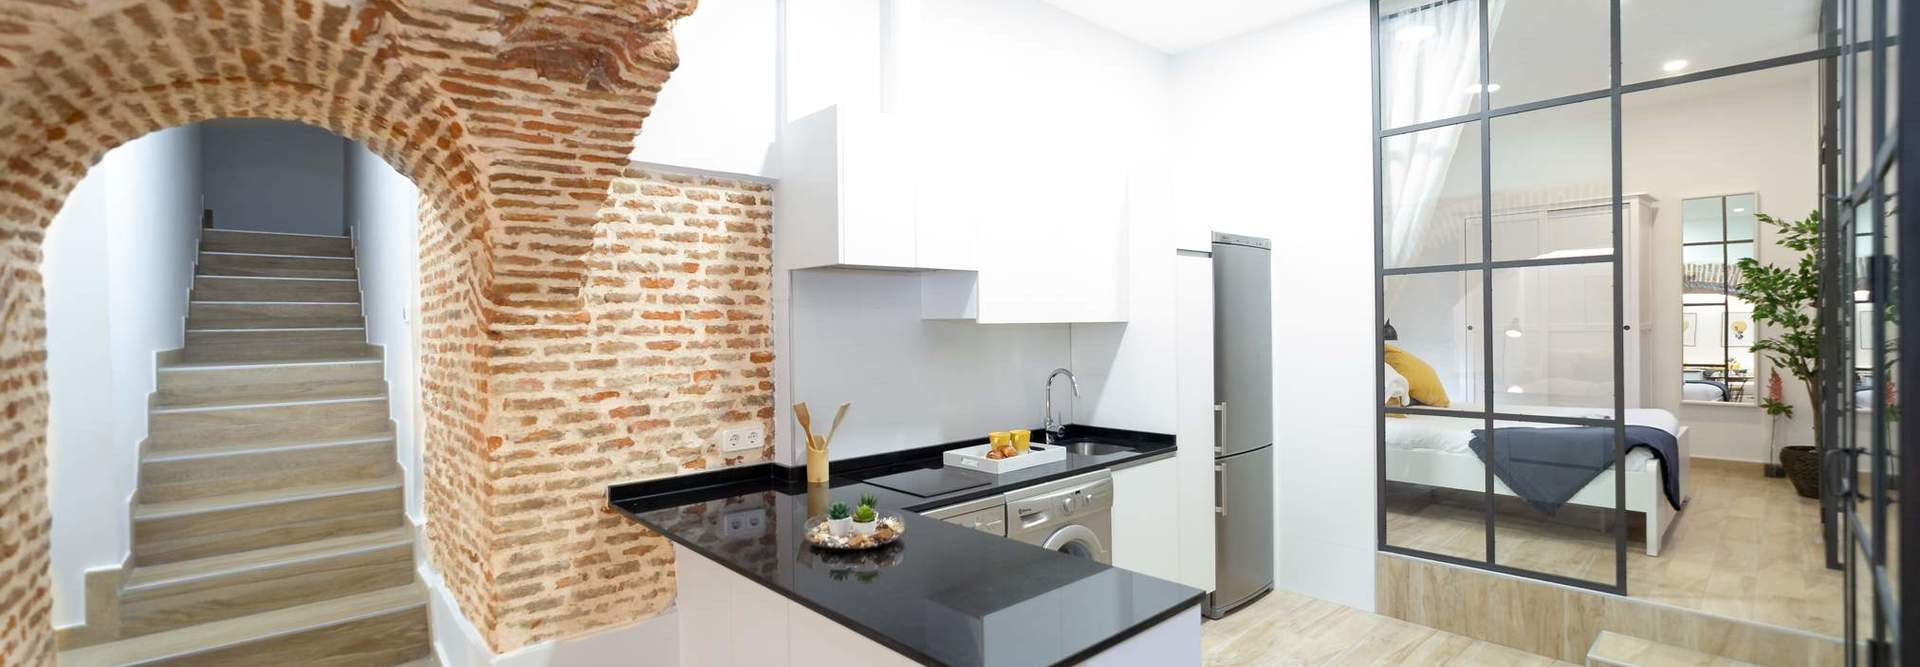 Home alquiler apartamentos madrid mad4rent 31